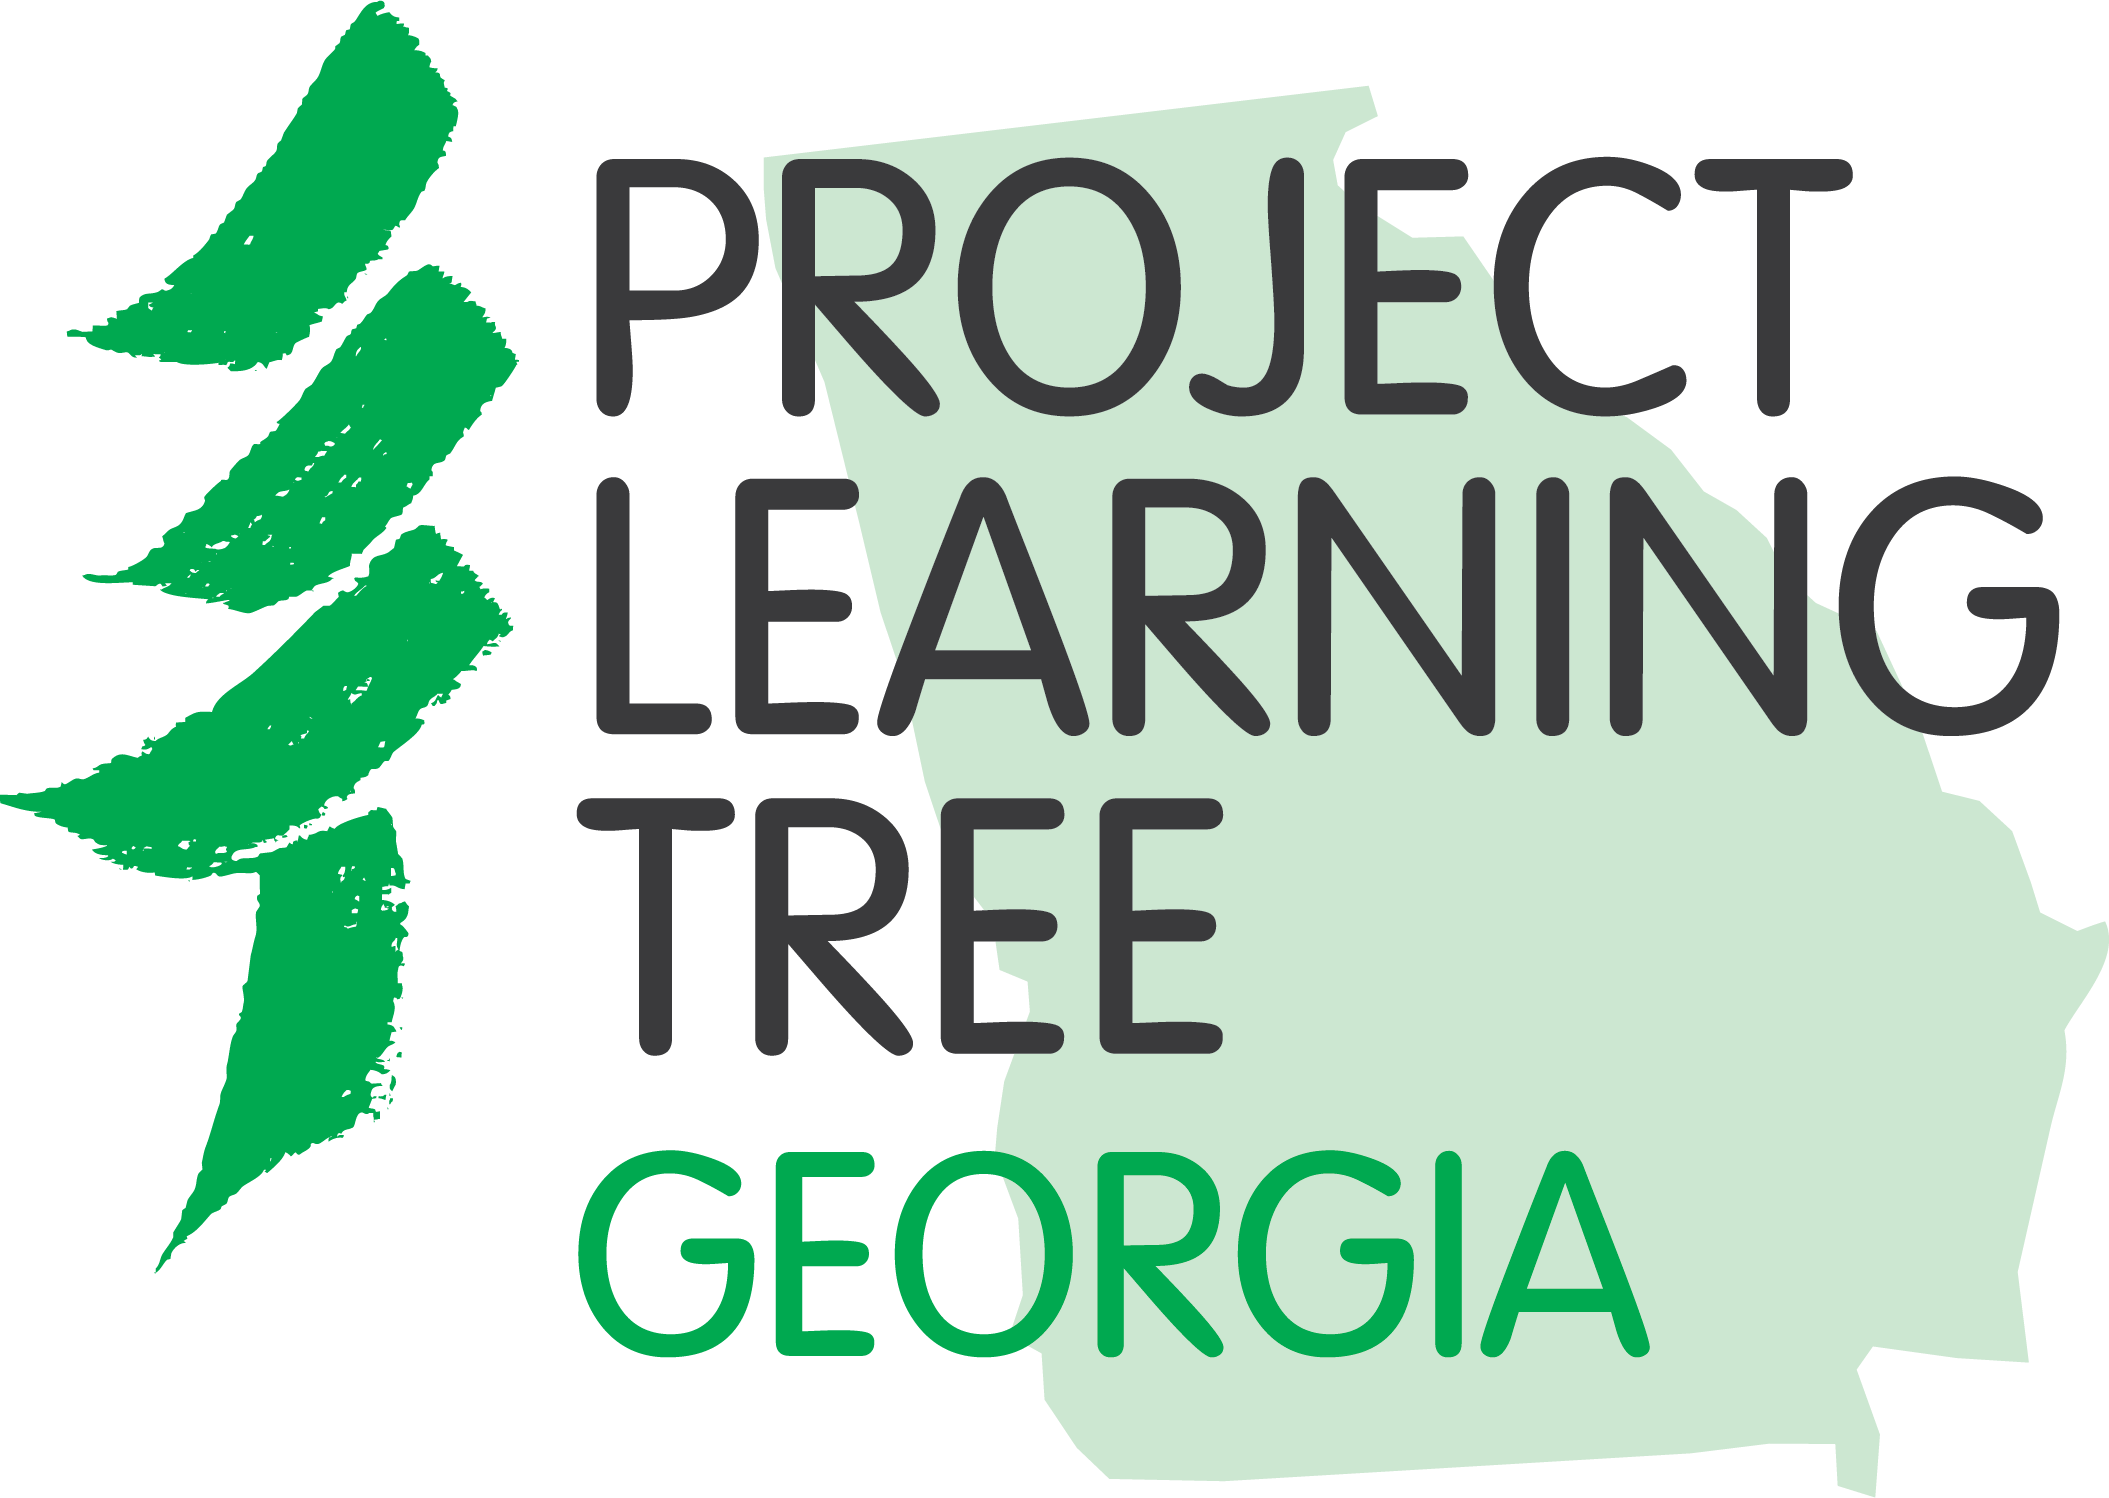 Georgia Project Learning Tree